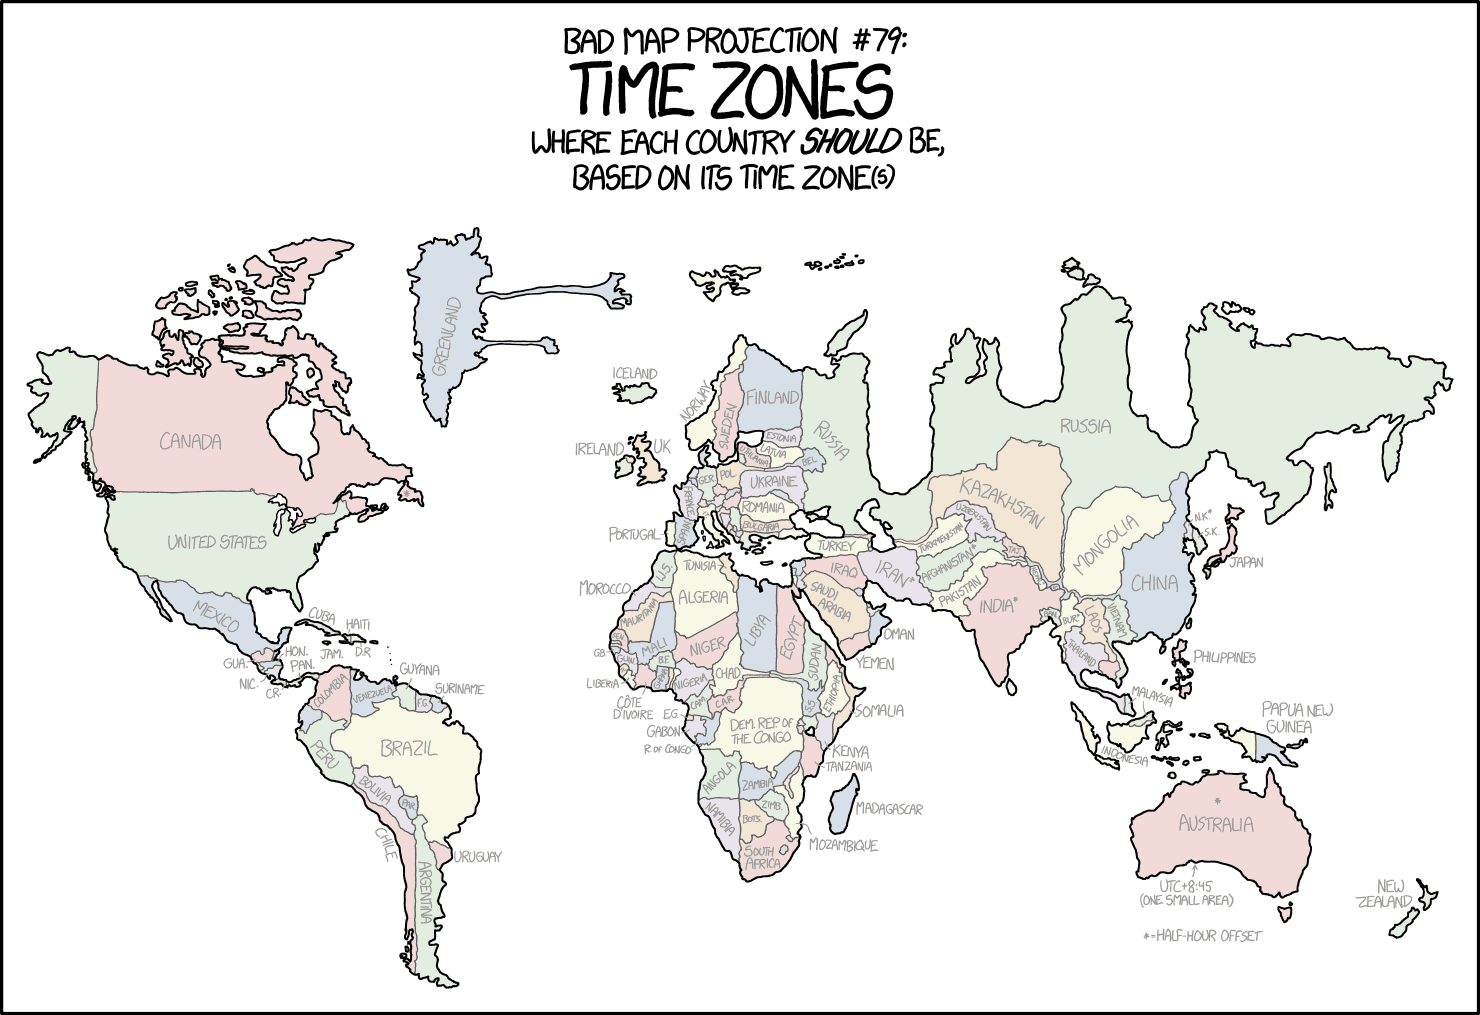 Where each country should be, based on it's time zones